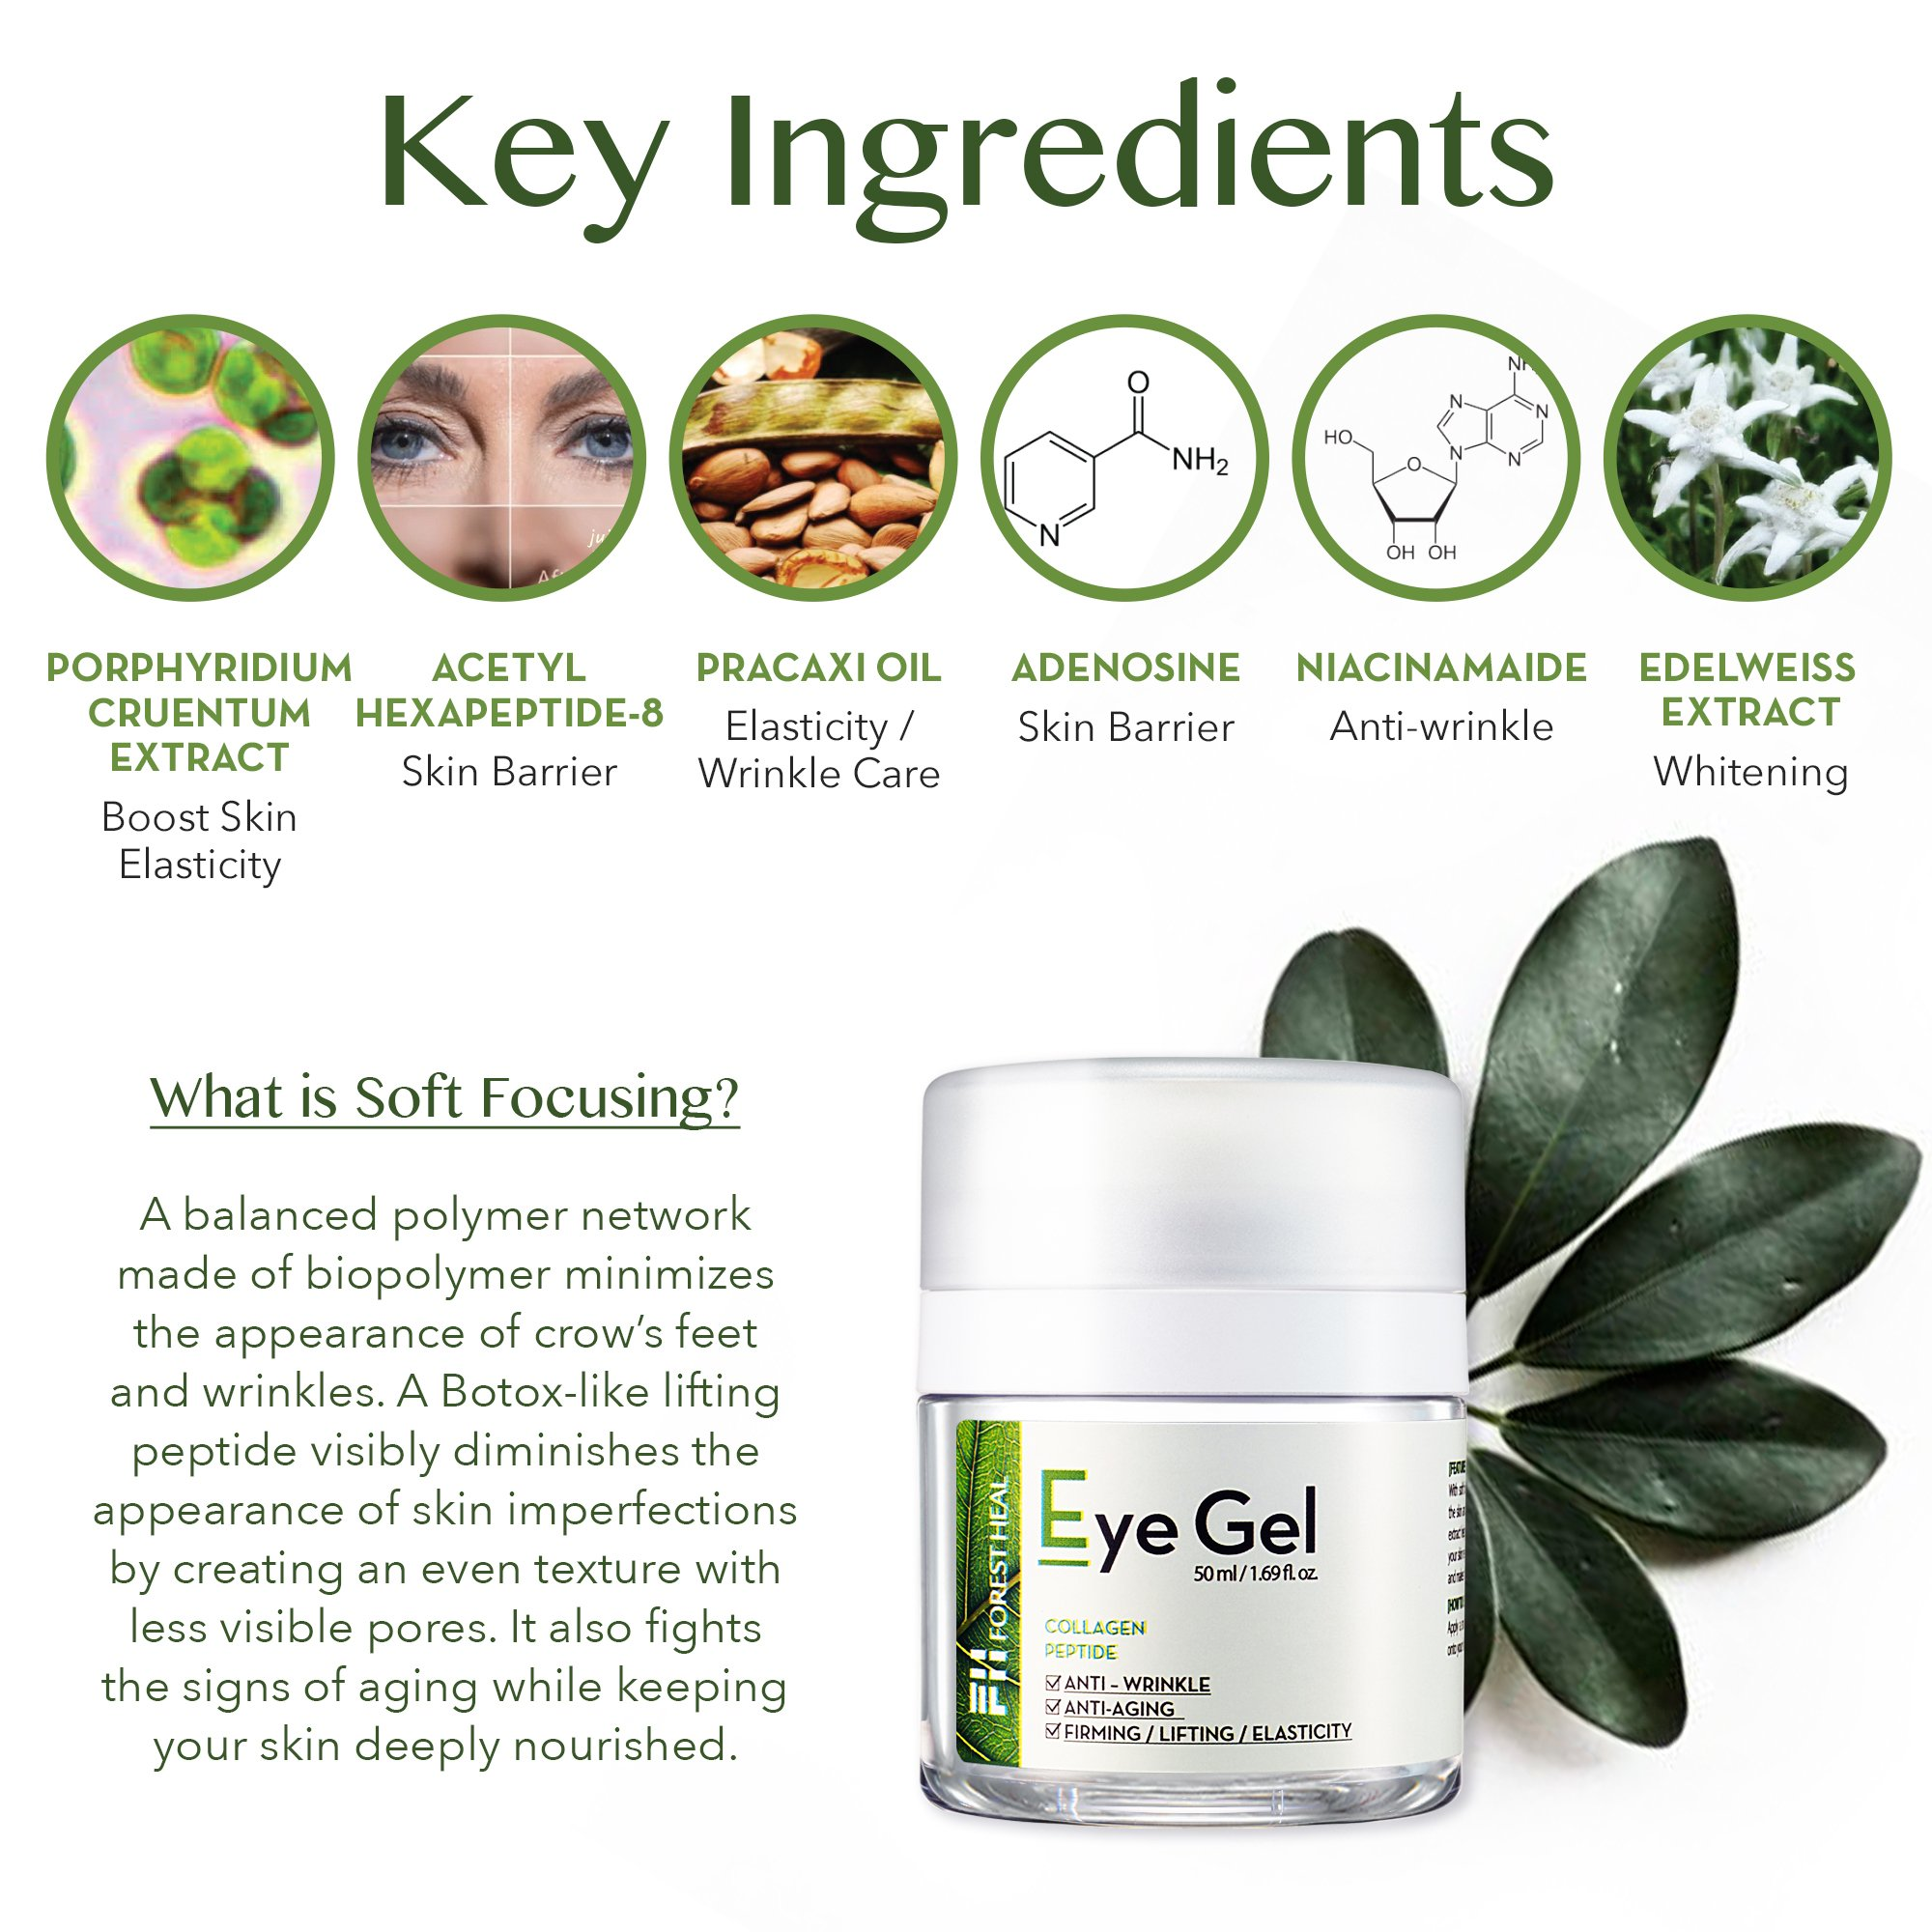 Forest Heal Eye Gel With Collagen Peptides and Niacinamide - Natural Anti Aging, Anti Wrinkle Moisturizer For Under and Around Eyes - 1.69 fl.oz. by Forest Heal (Image #5)